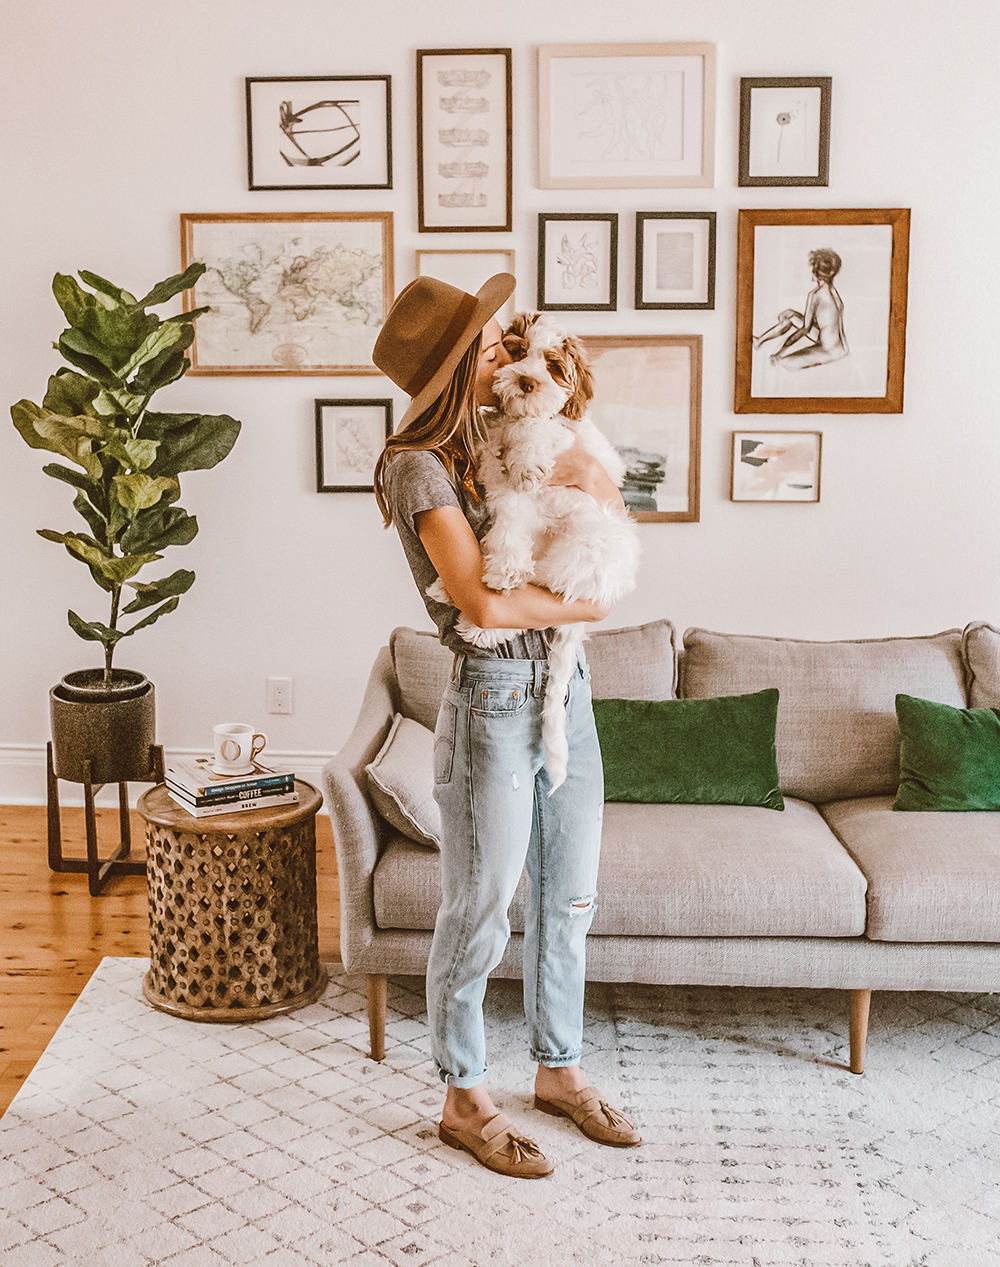 livvyland-blog-olivia-watson-home-decor-interiors-living-room-watson-aussie-doodle-puppy-levis-501-jeans